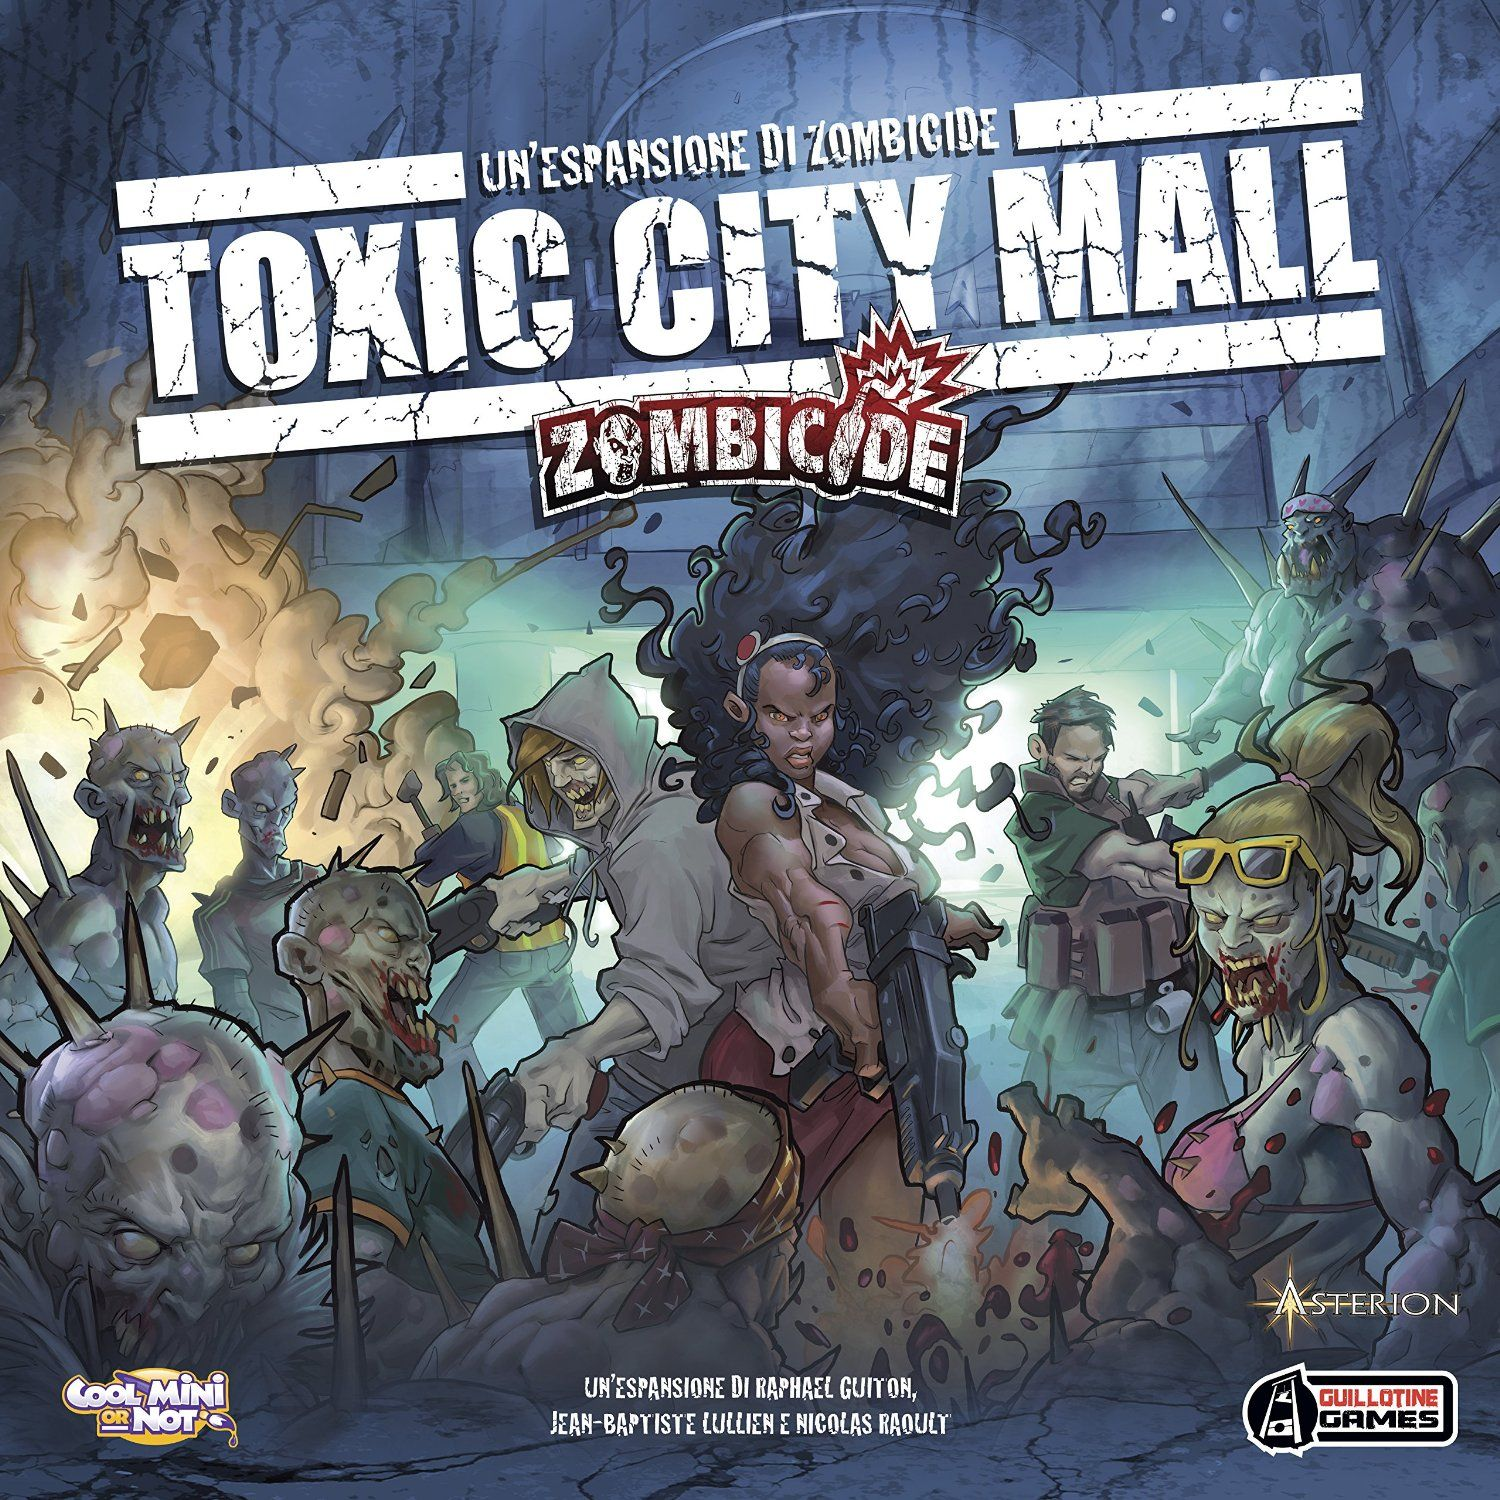 Amazon.com: Zombicide Toxic City Mall Expansion Board Game: Toys & Games